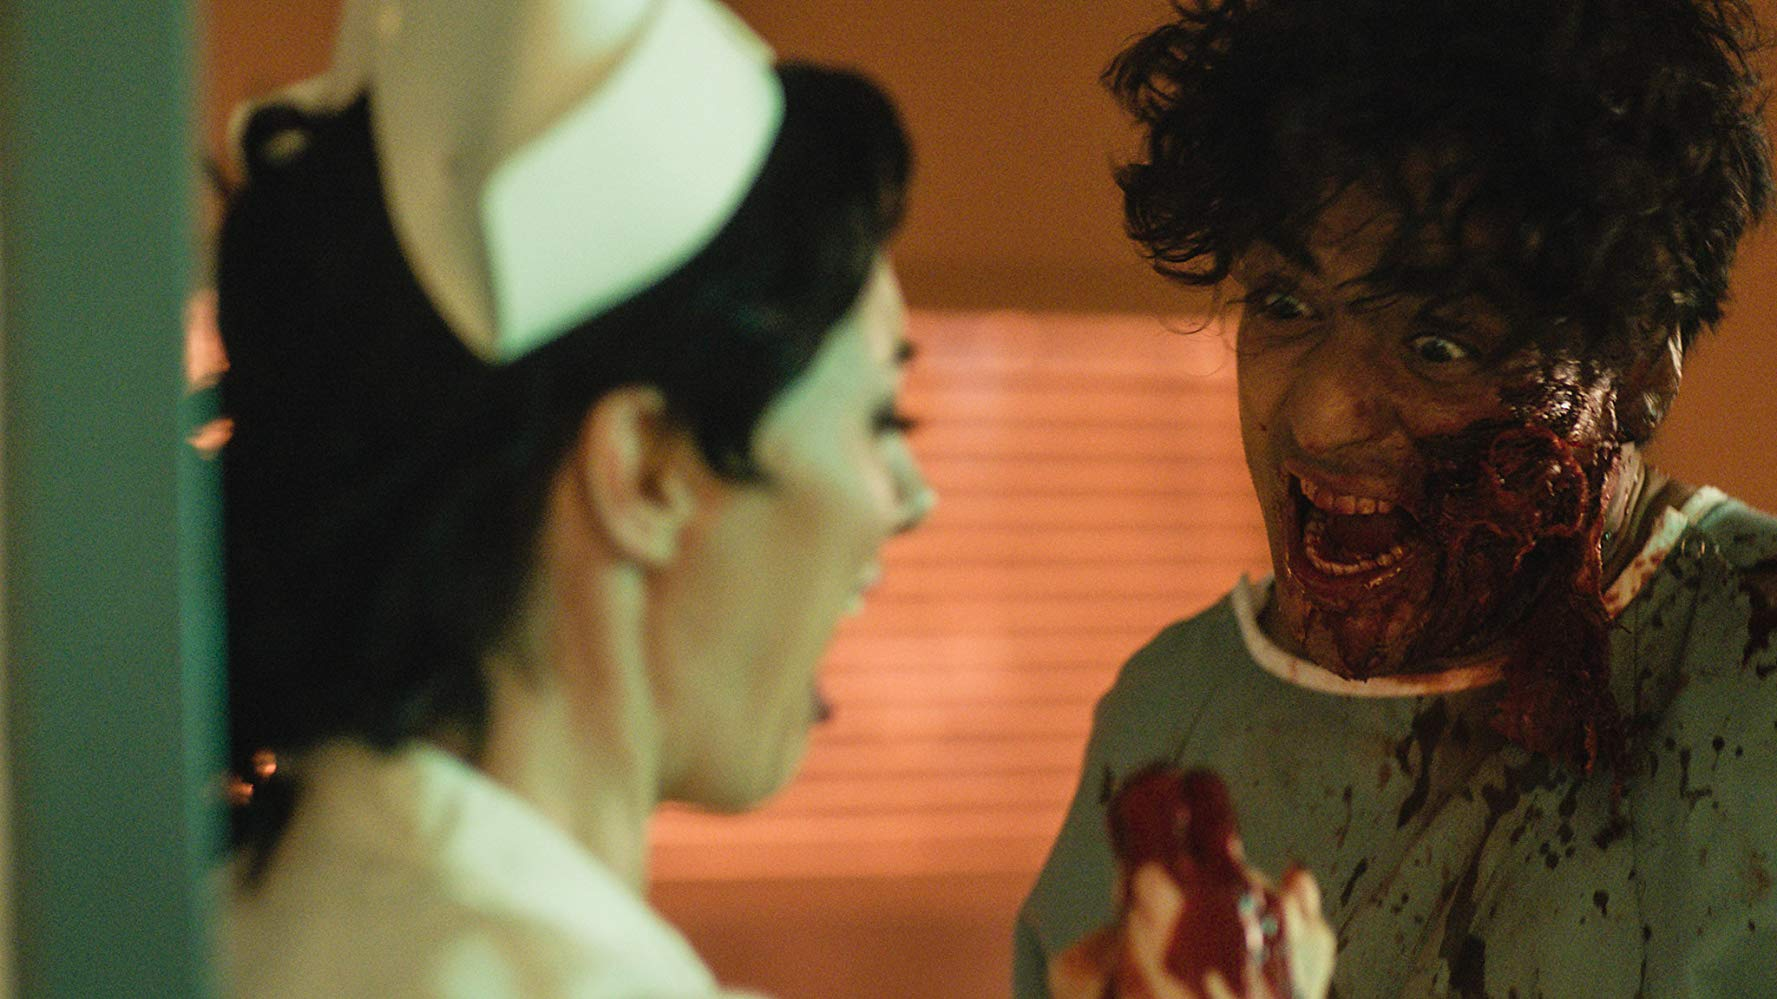 Rabid Screenshot - Tristan Risk Loses Fingers in Our Exclusive (NSFW) Clip from RABID in Theaters & VOD Friday + New Pics